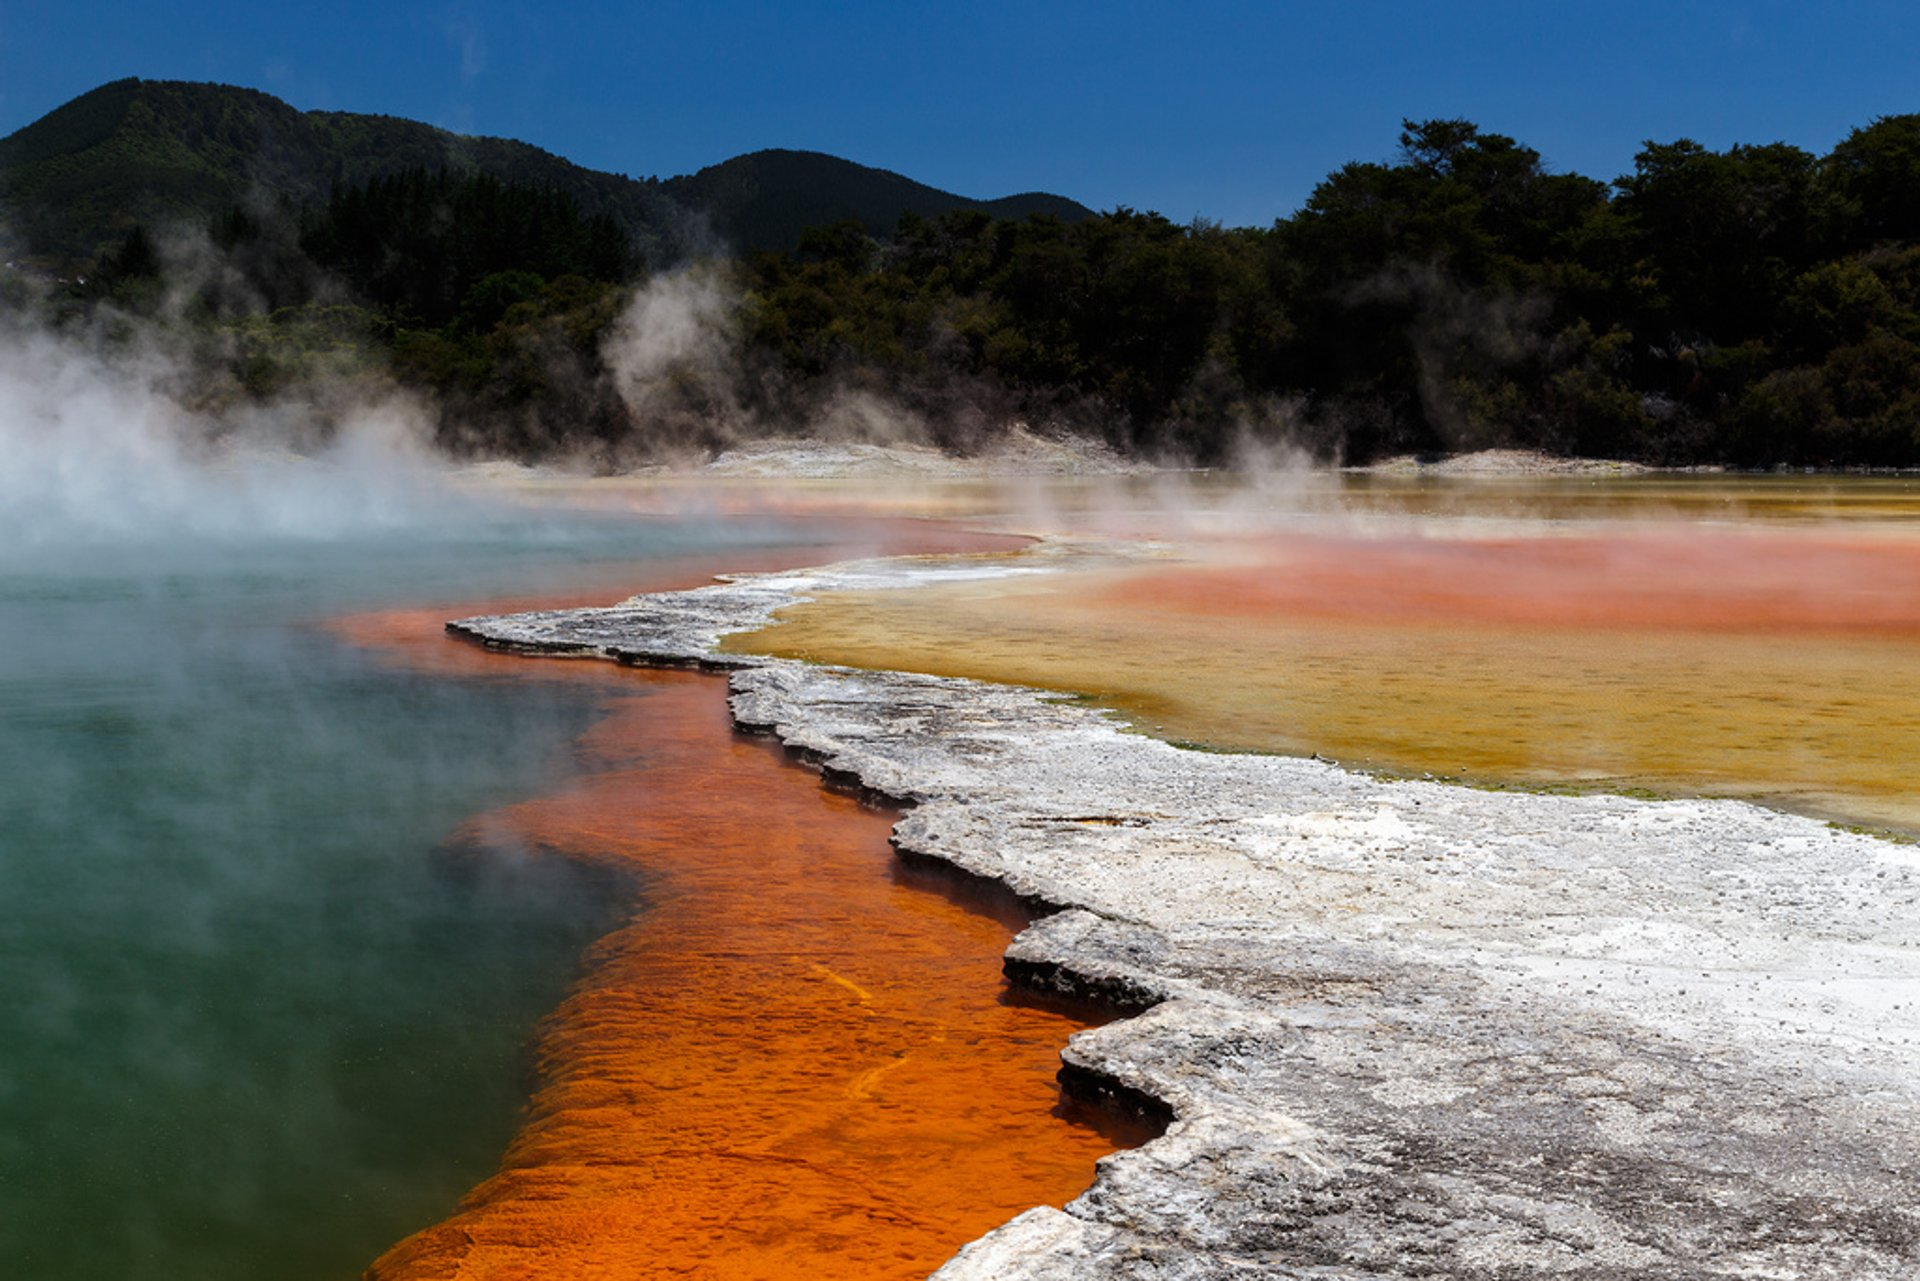 Wai-O-Tapu Thermal Wonderland in New Zealand 2020 - Best Time